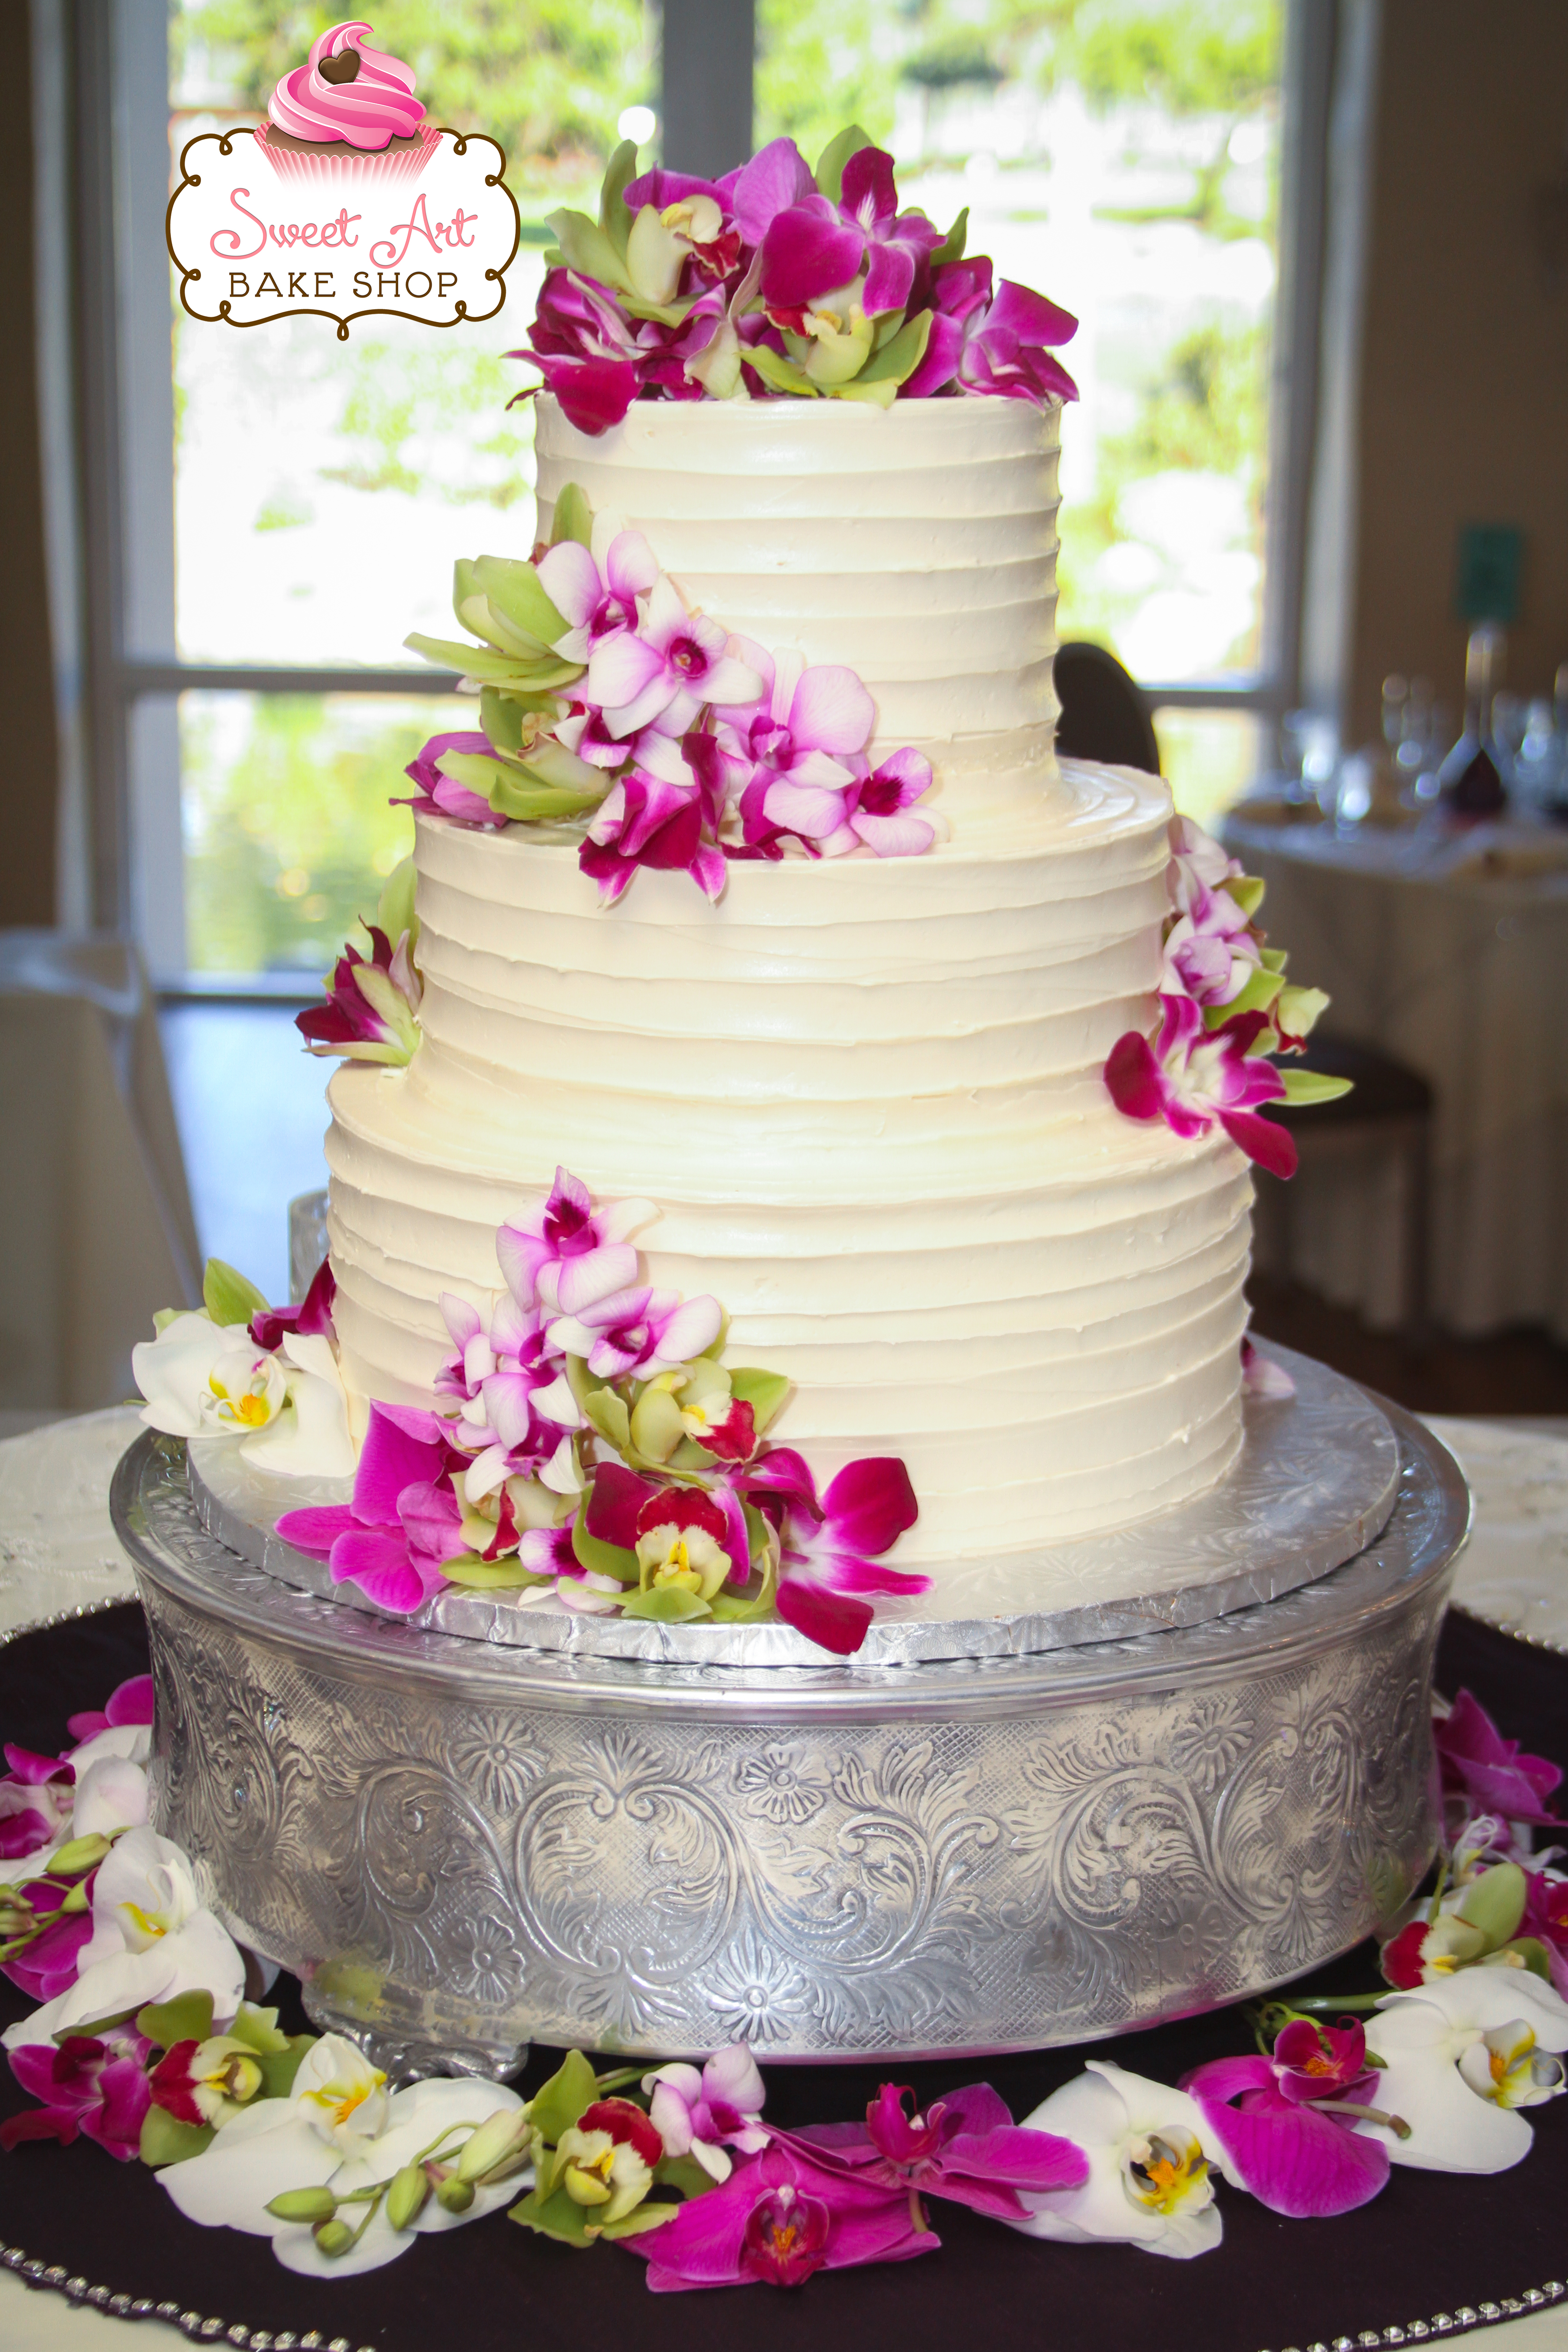 Ashley & Ryan's Wedding Cake